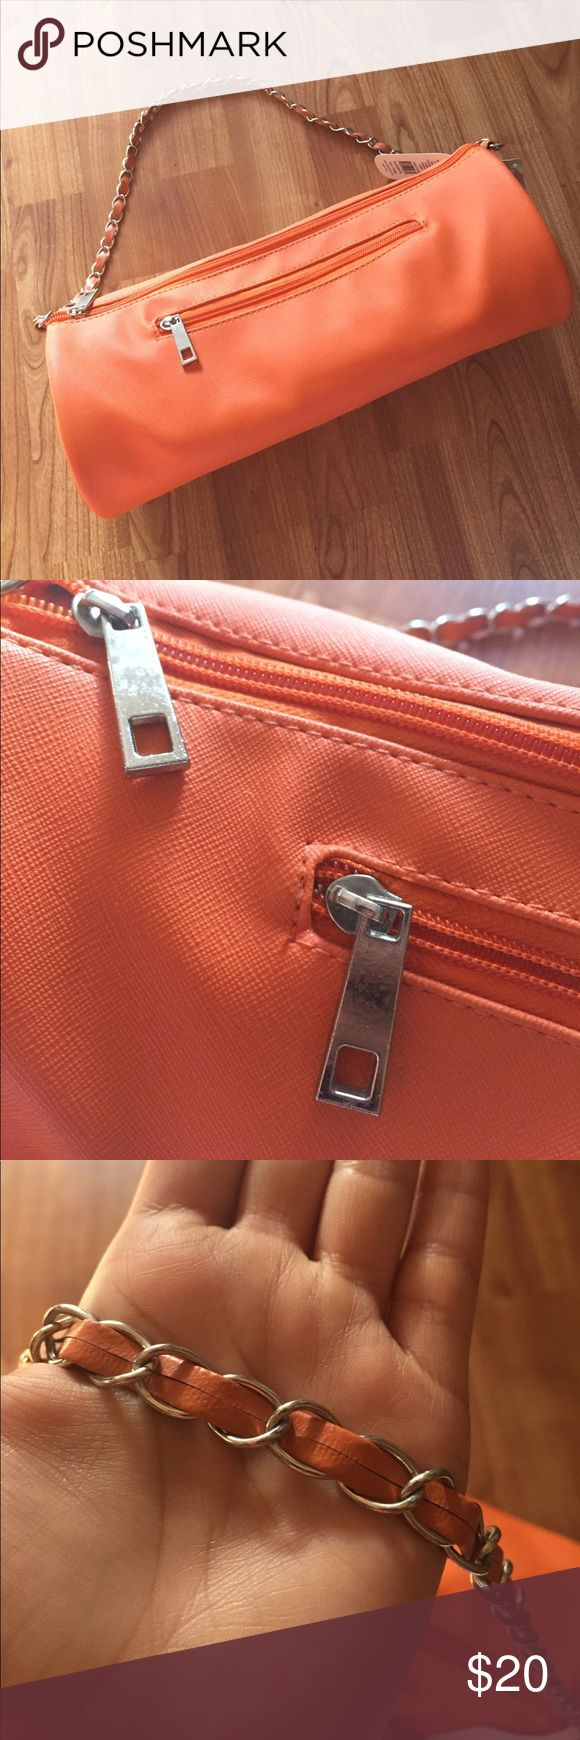 Orange Wine Purse Orange wine purse with silver hardware. Fits a standard bottle of wine perfectly 😊 could be used as a lunch bag or purse. Interior is insulated. Small scuff on one of the ends(see last photo). Bags